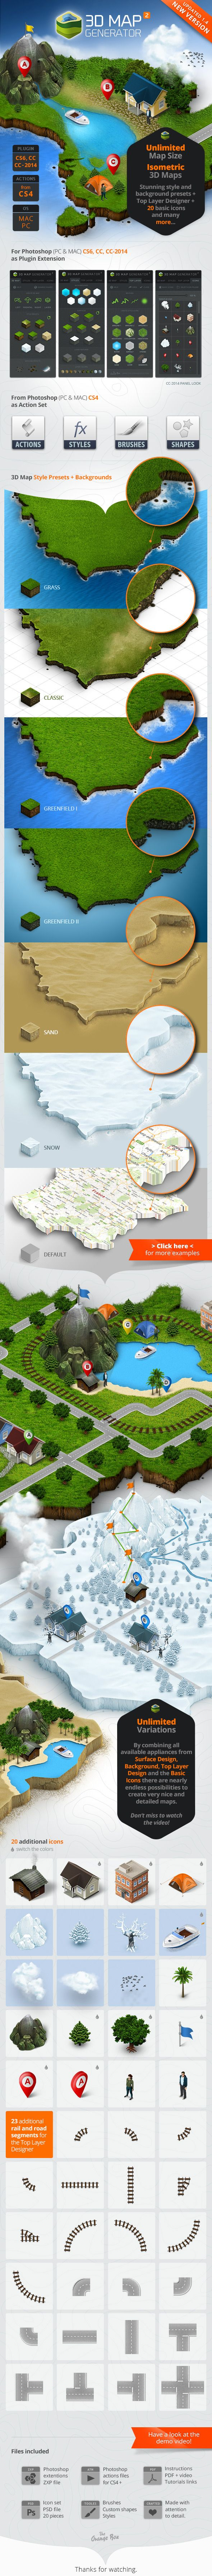 3D Map Generator 2 - Isometric - Utilities Actions